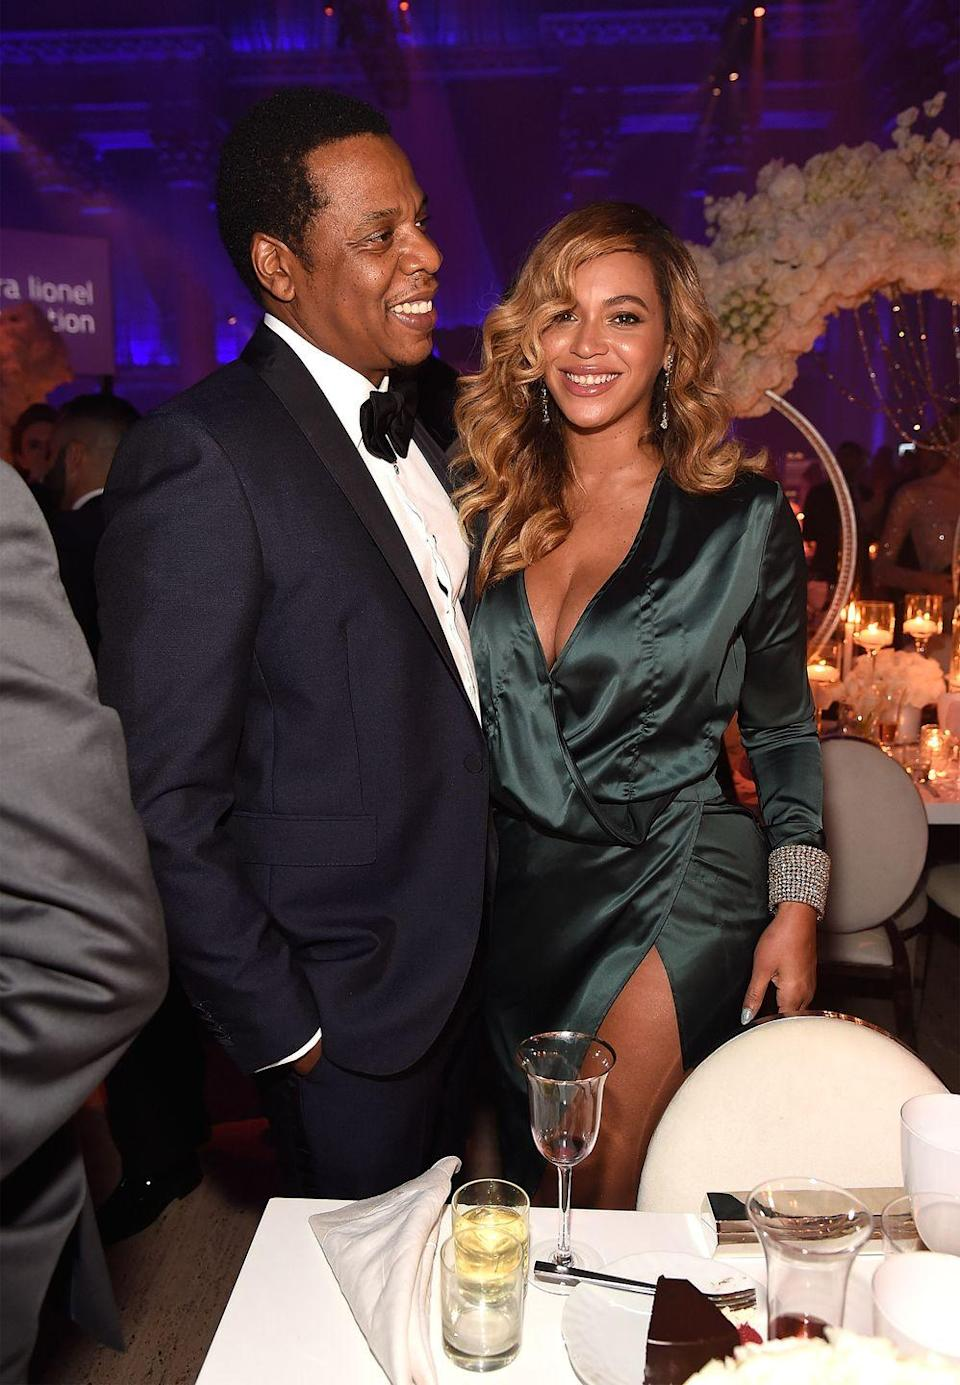 <p><strong>Age gap: </strong>12 years</p><p>Beyonce and Jay-Z started dating in 2001 but were tight-lipped about it until their first joint appearance at the 2004 VMAs. The couple got married in 2008 in a secret ceremony in their New York City apartment. They welcomed their first child in 2012, as well as twins in 2017.</p>